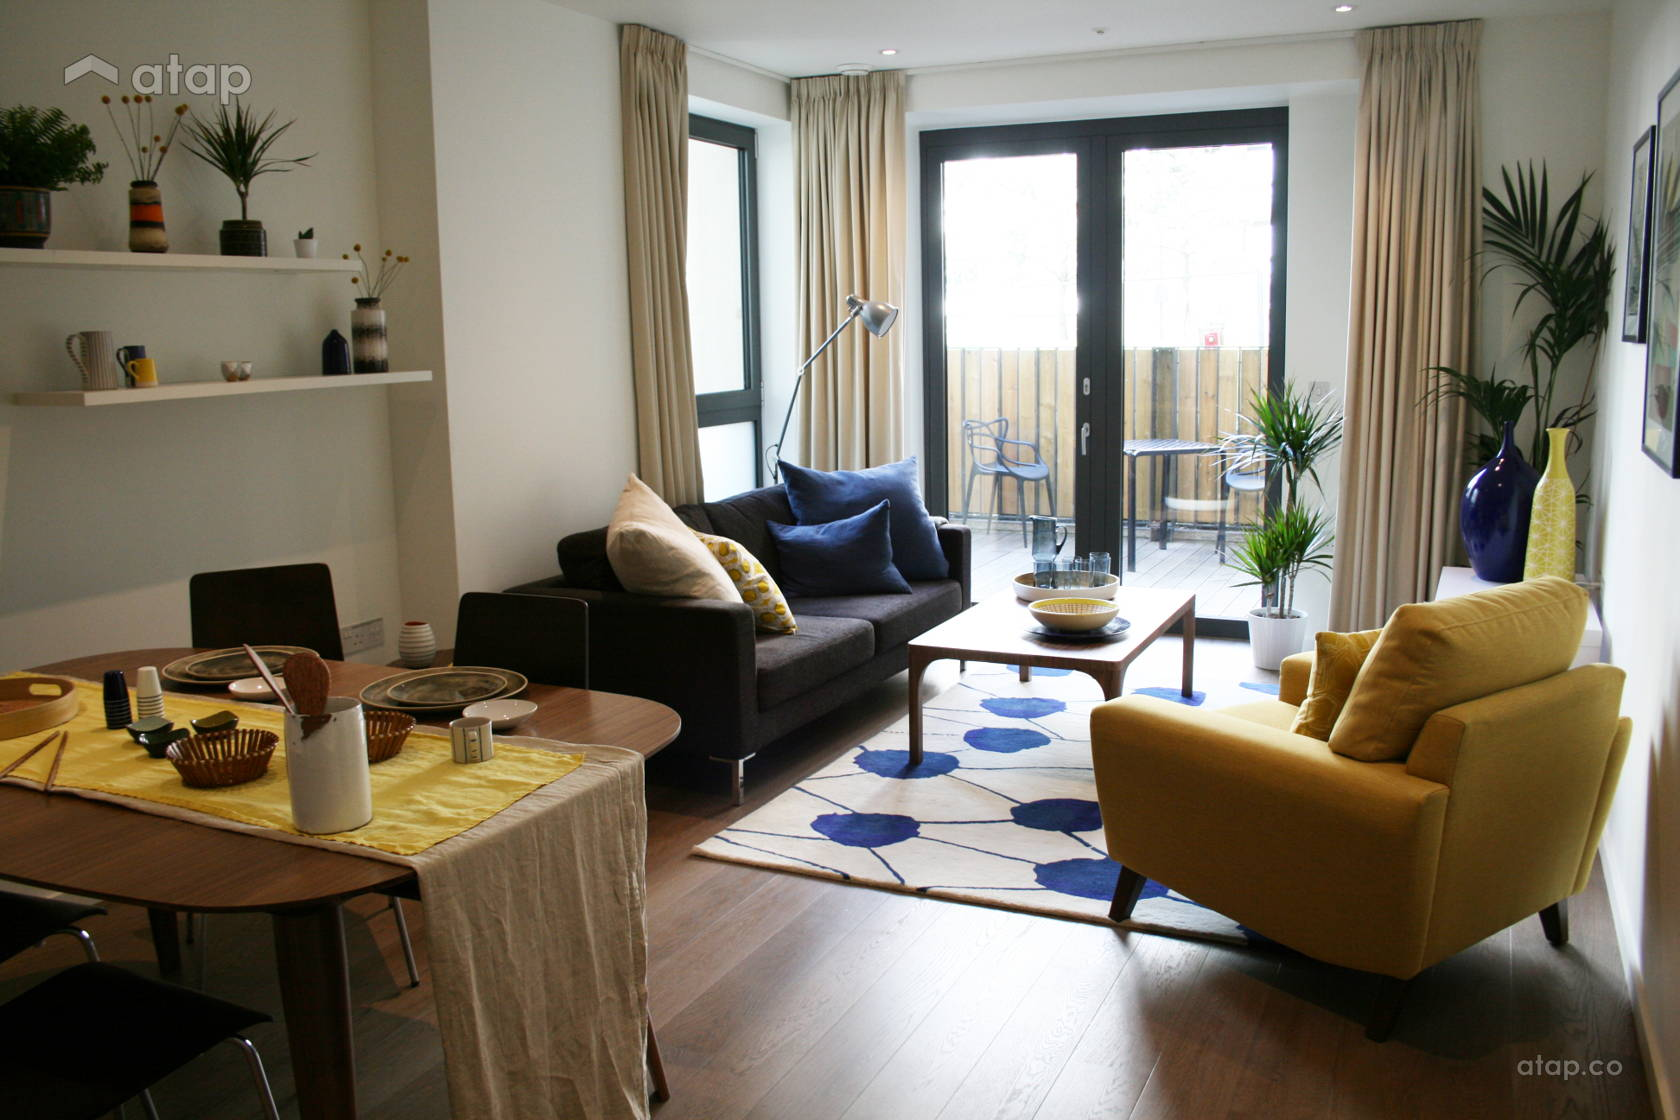 1 Room, 2 Spaces: How To Separate Your Open-Plan Living